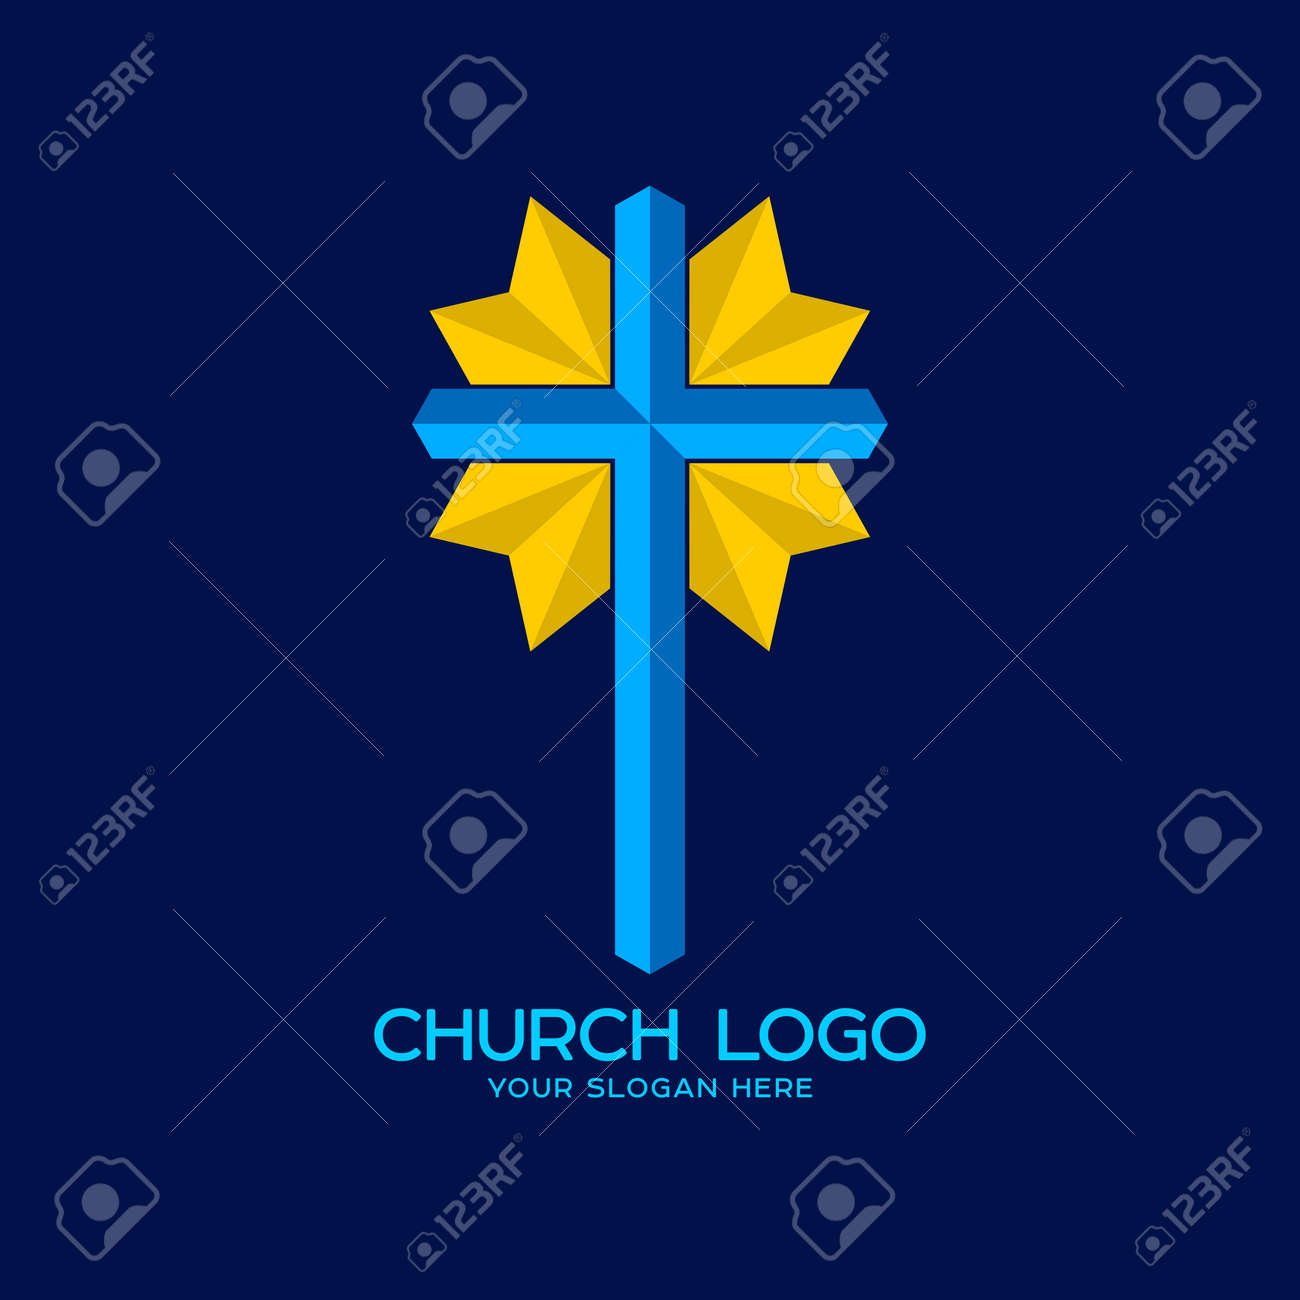 Church logo christian symbols cross of the savior jesus christ church logo christian symbols cross of the savior jesus christ stock vector 81890640 buycottarizona Image collections